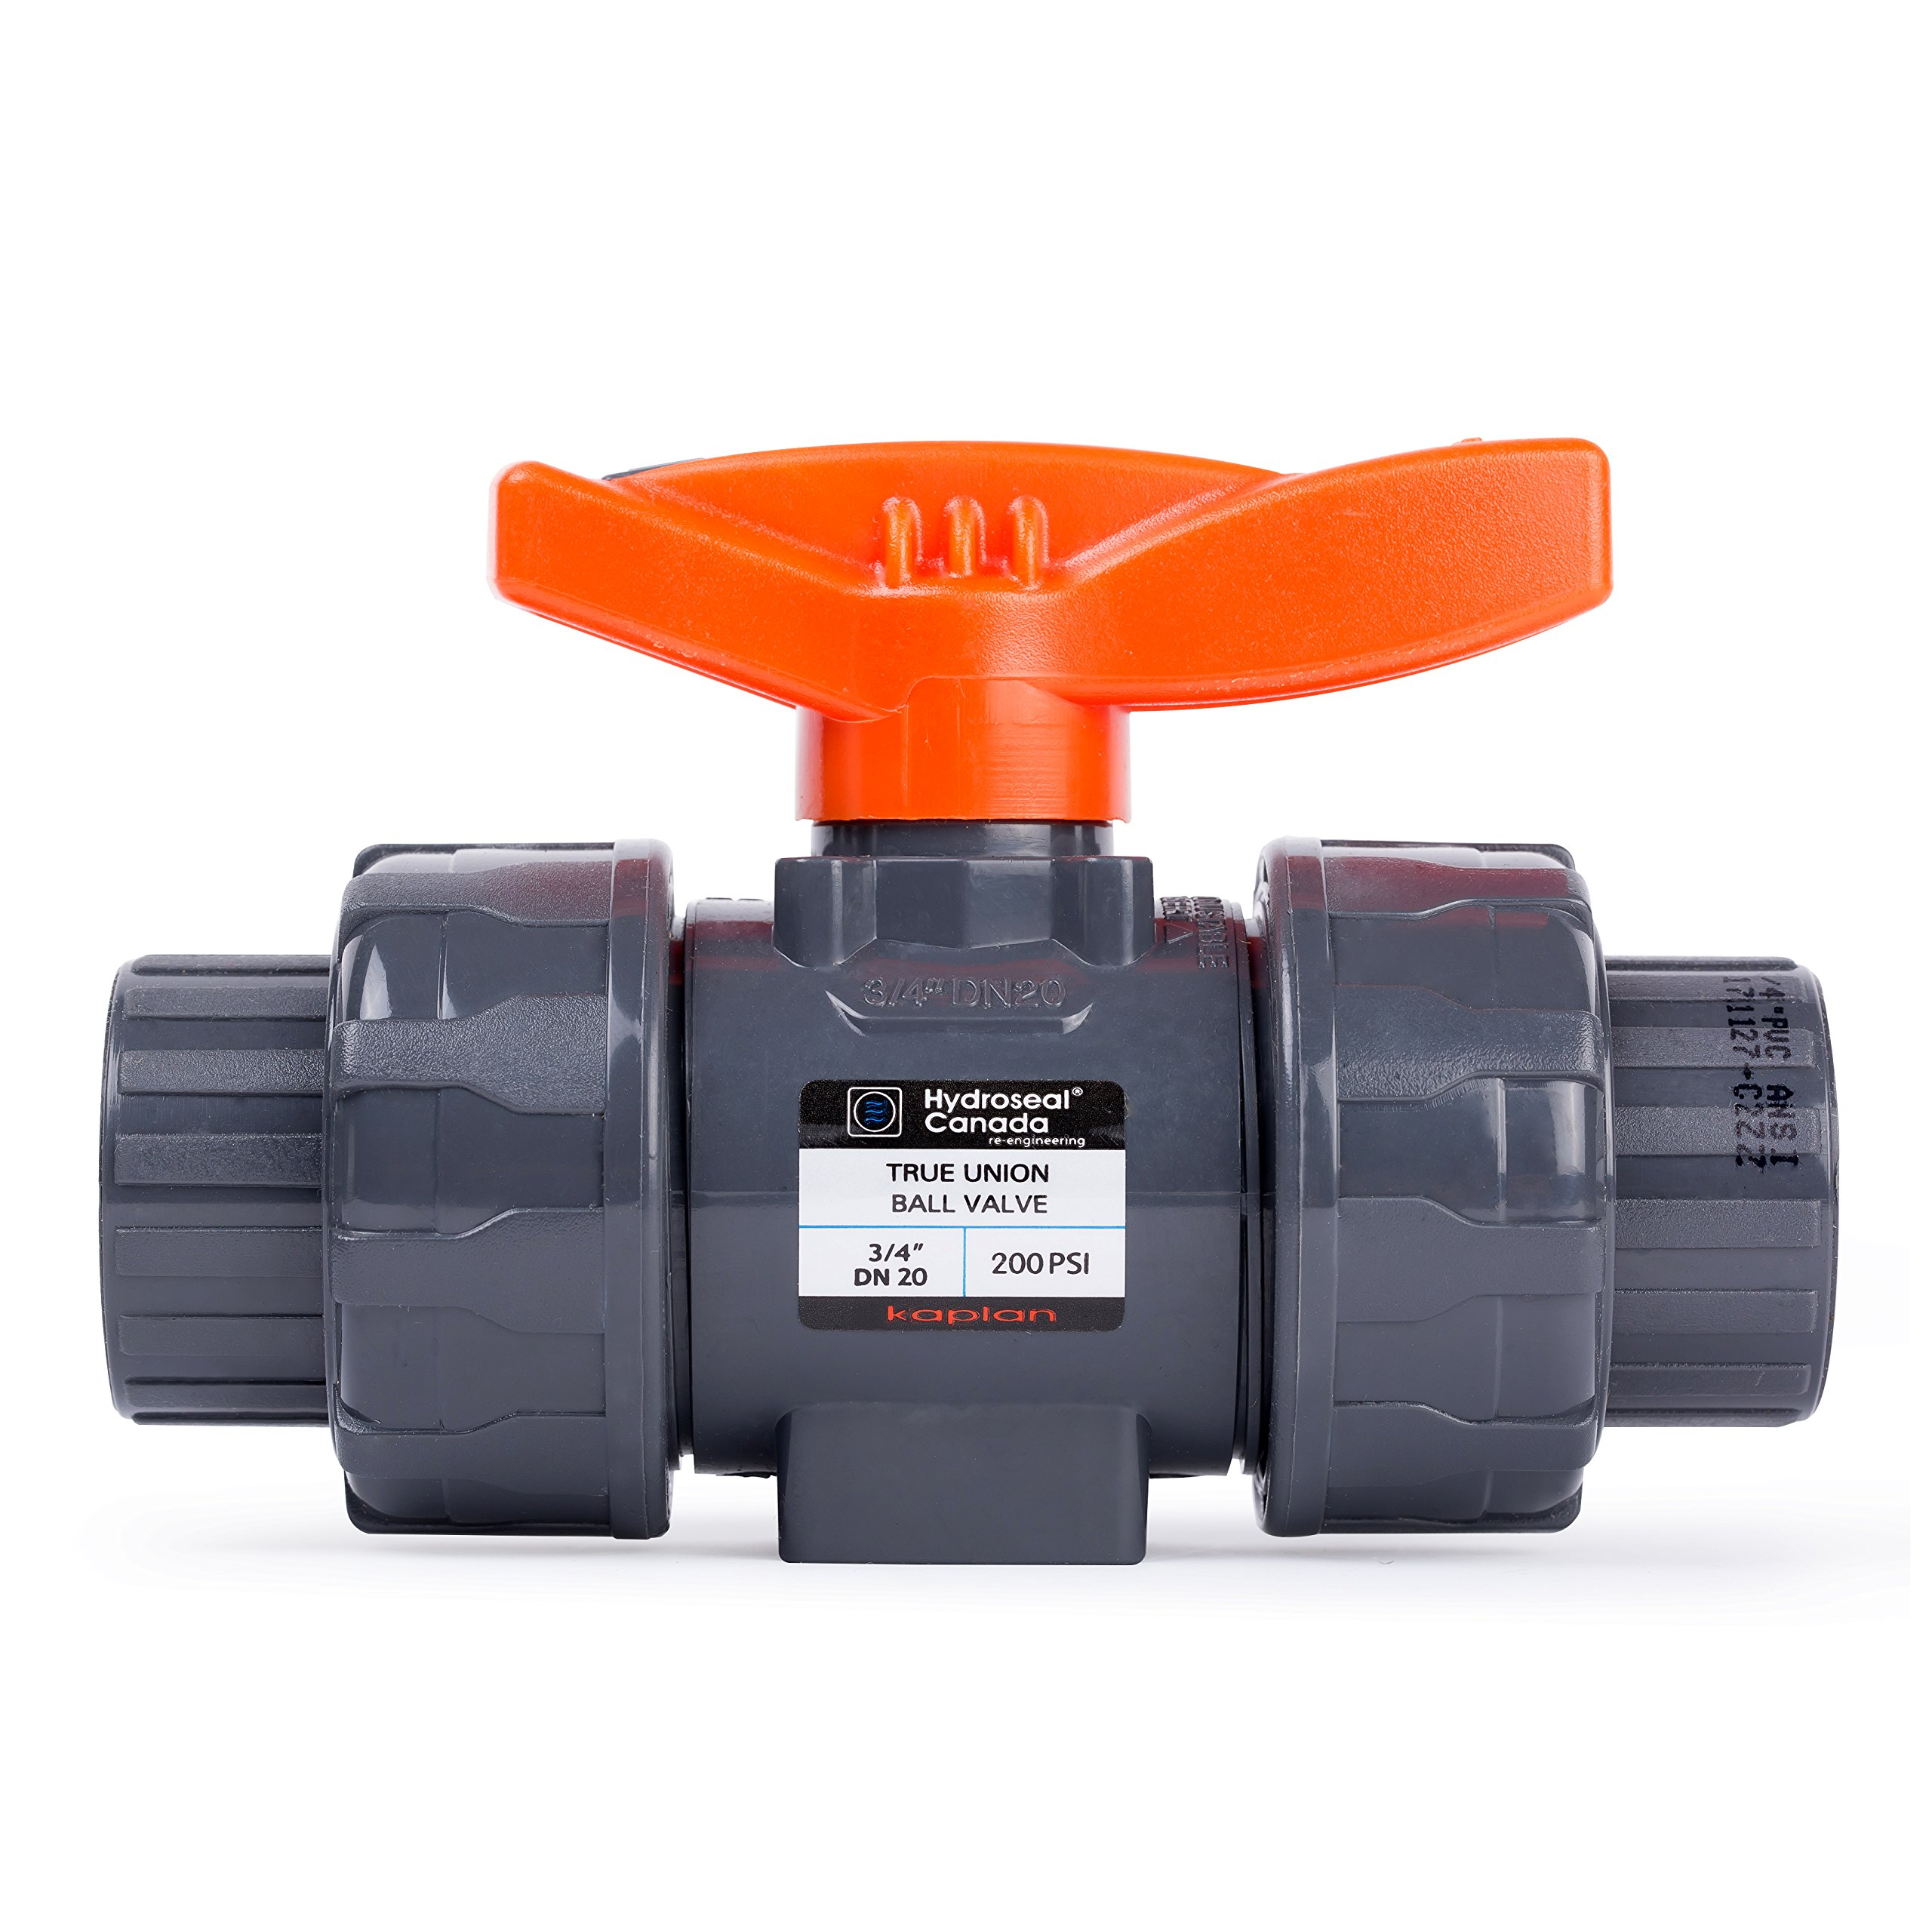 HYDROSEAL Kaplan 3/4'' PVC True Union Ball Valve with Full Port, ASTM F1970, EPDM O-Rings and Reversible PTFE Seats, Rated at 200 PSI @73F, Gray, 3/4 inch Socket (3/4'') by Hydroseal (Image #1)